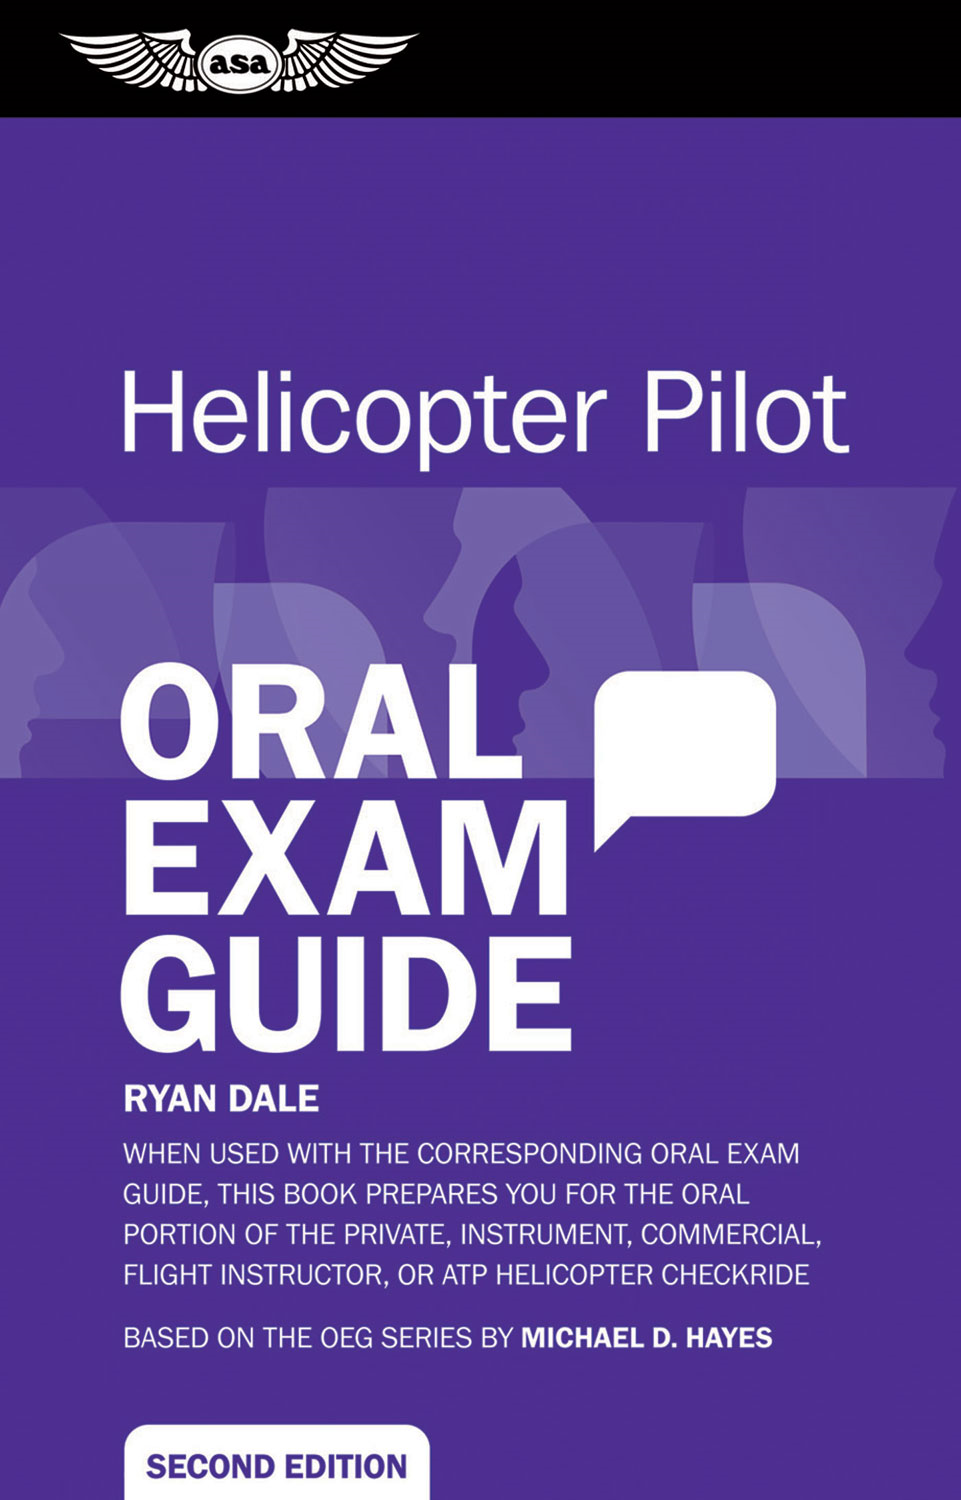 Helicopter Pilot Oral Exam Guide By: Ryan Dale